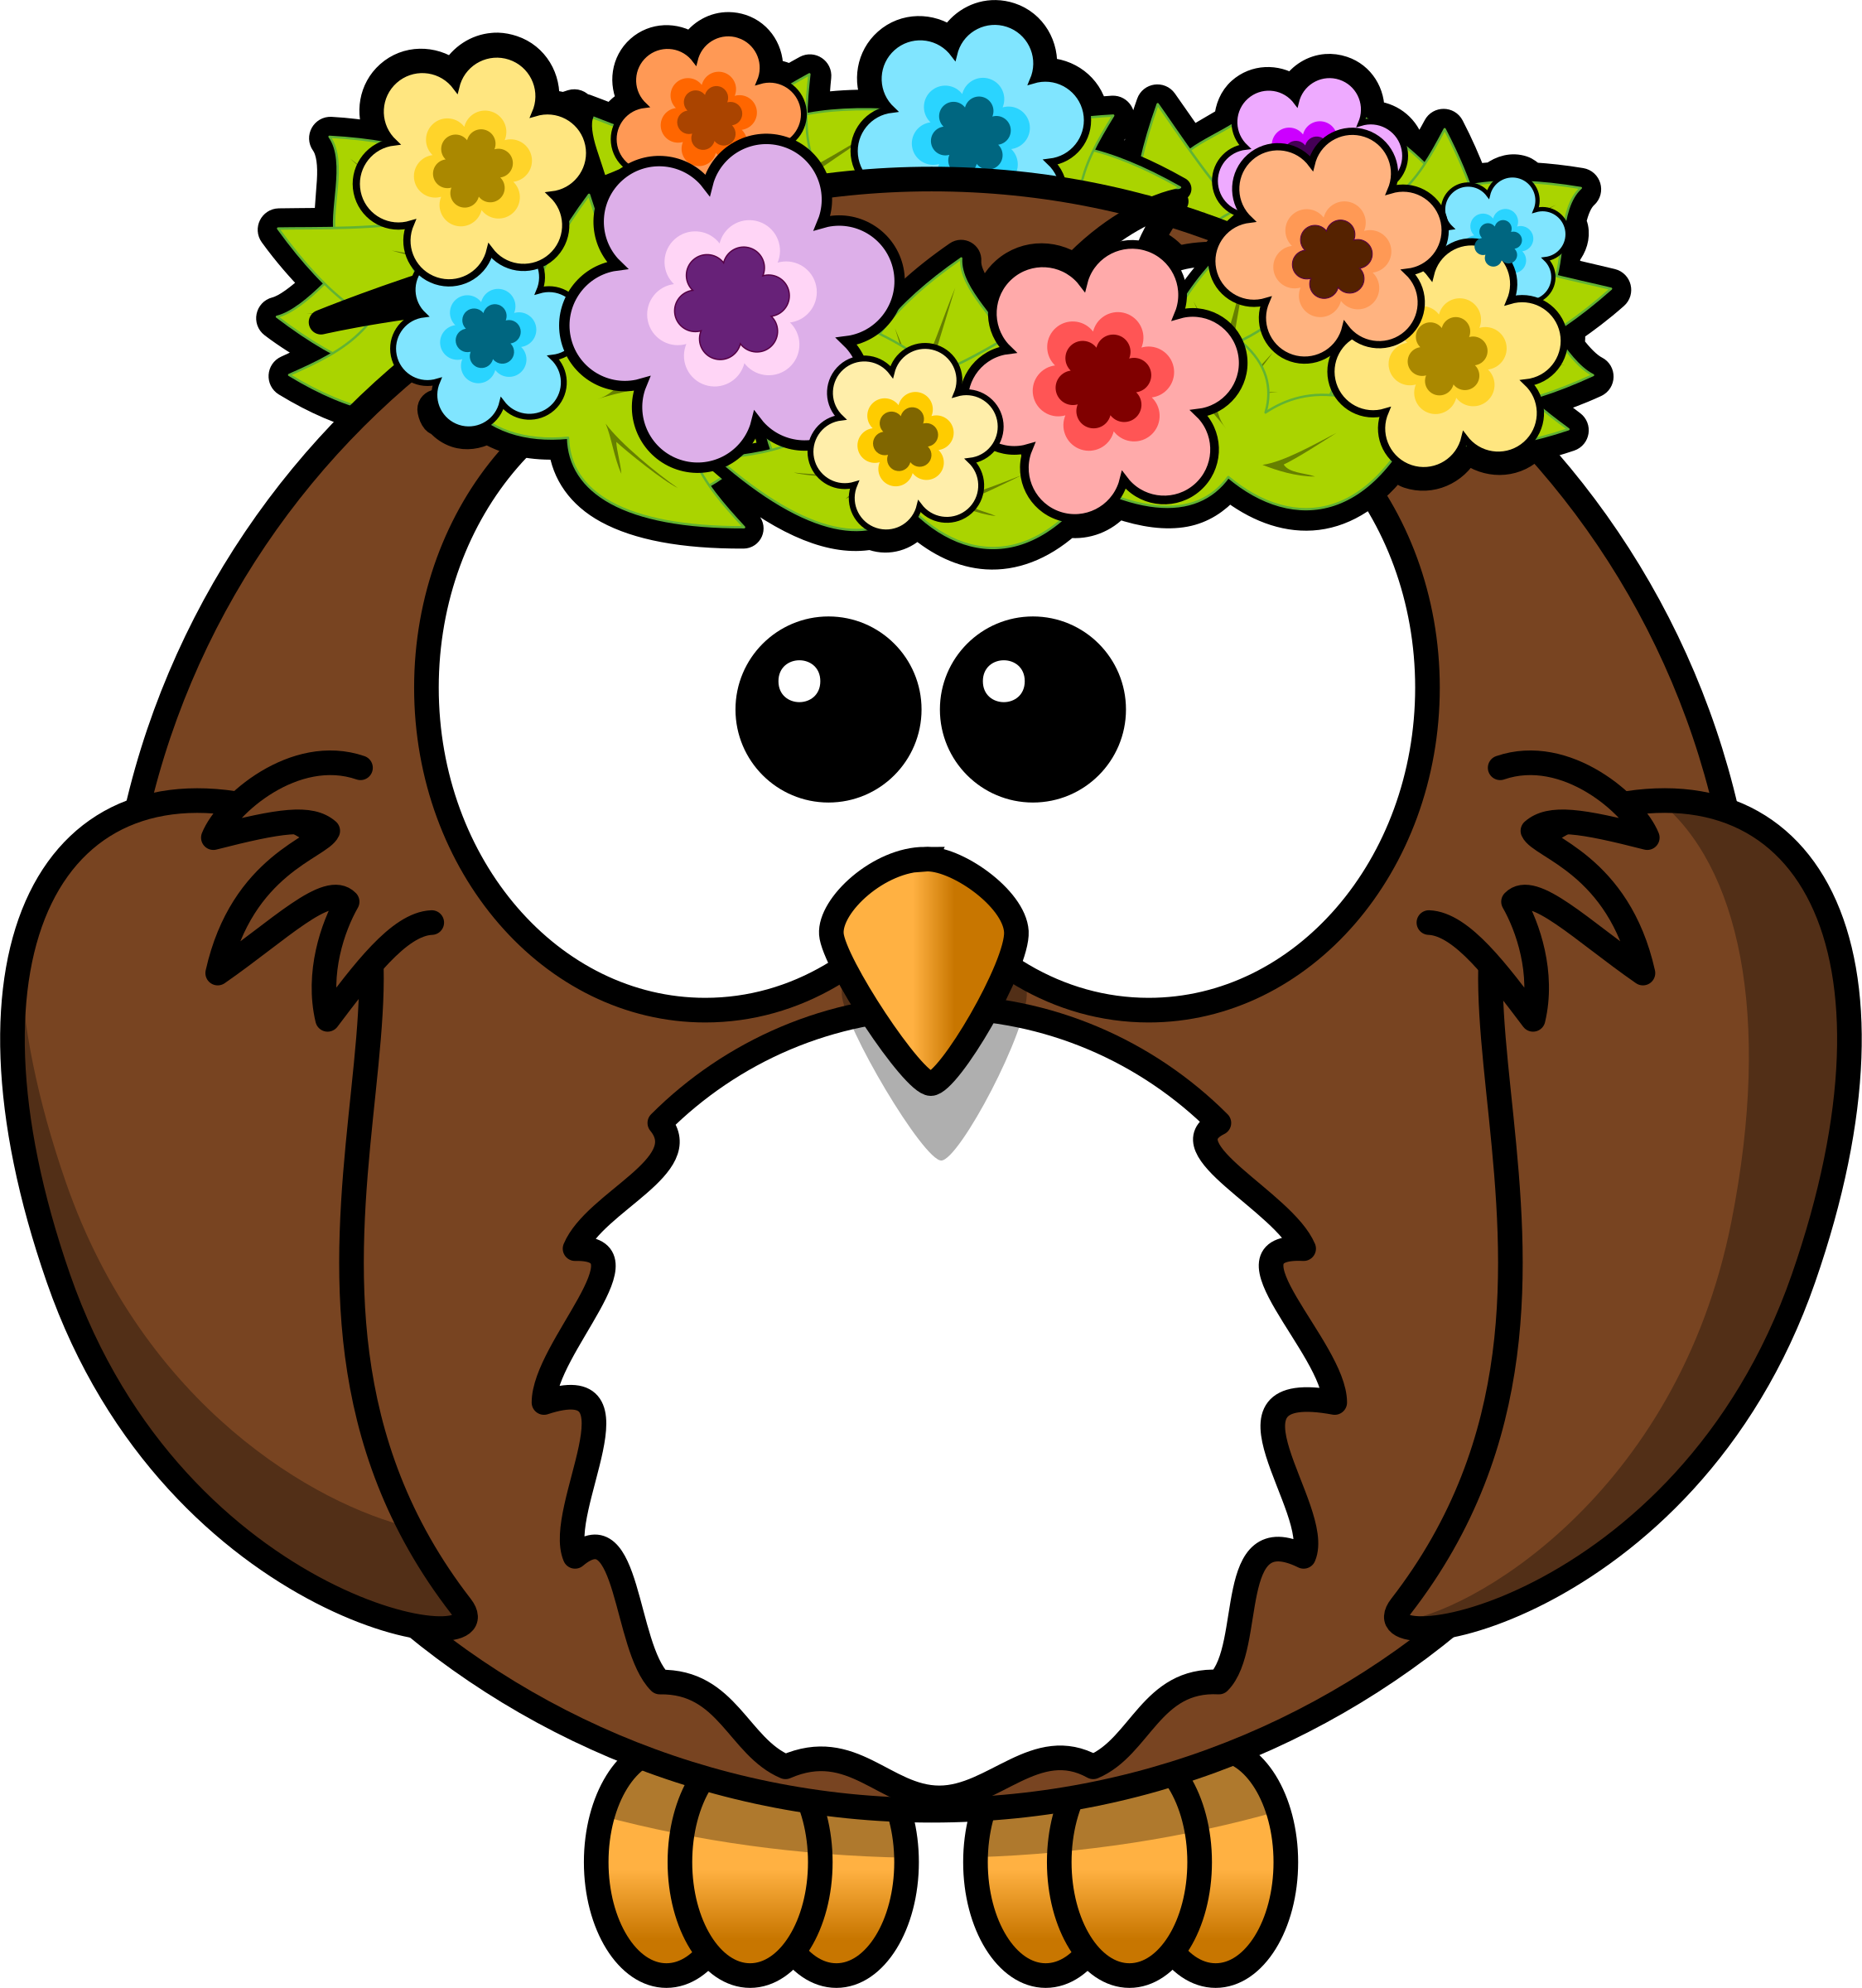 April showers clipart jpg transparent download Clipart - Owl with garland jpg transparent download